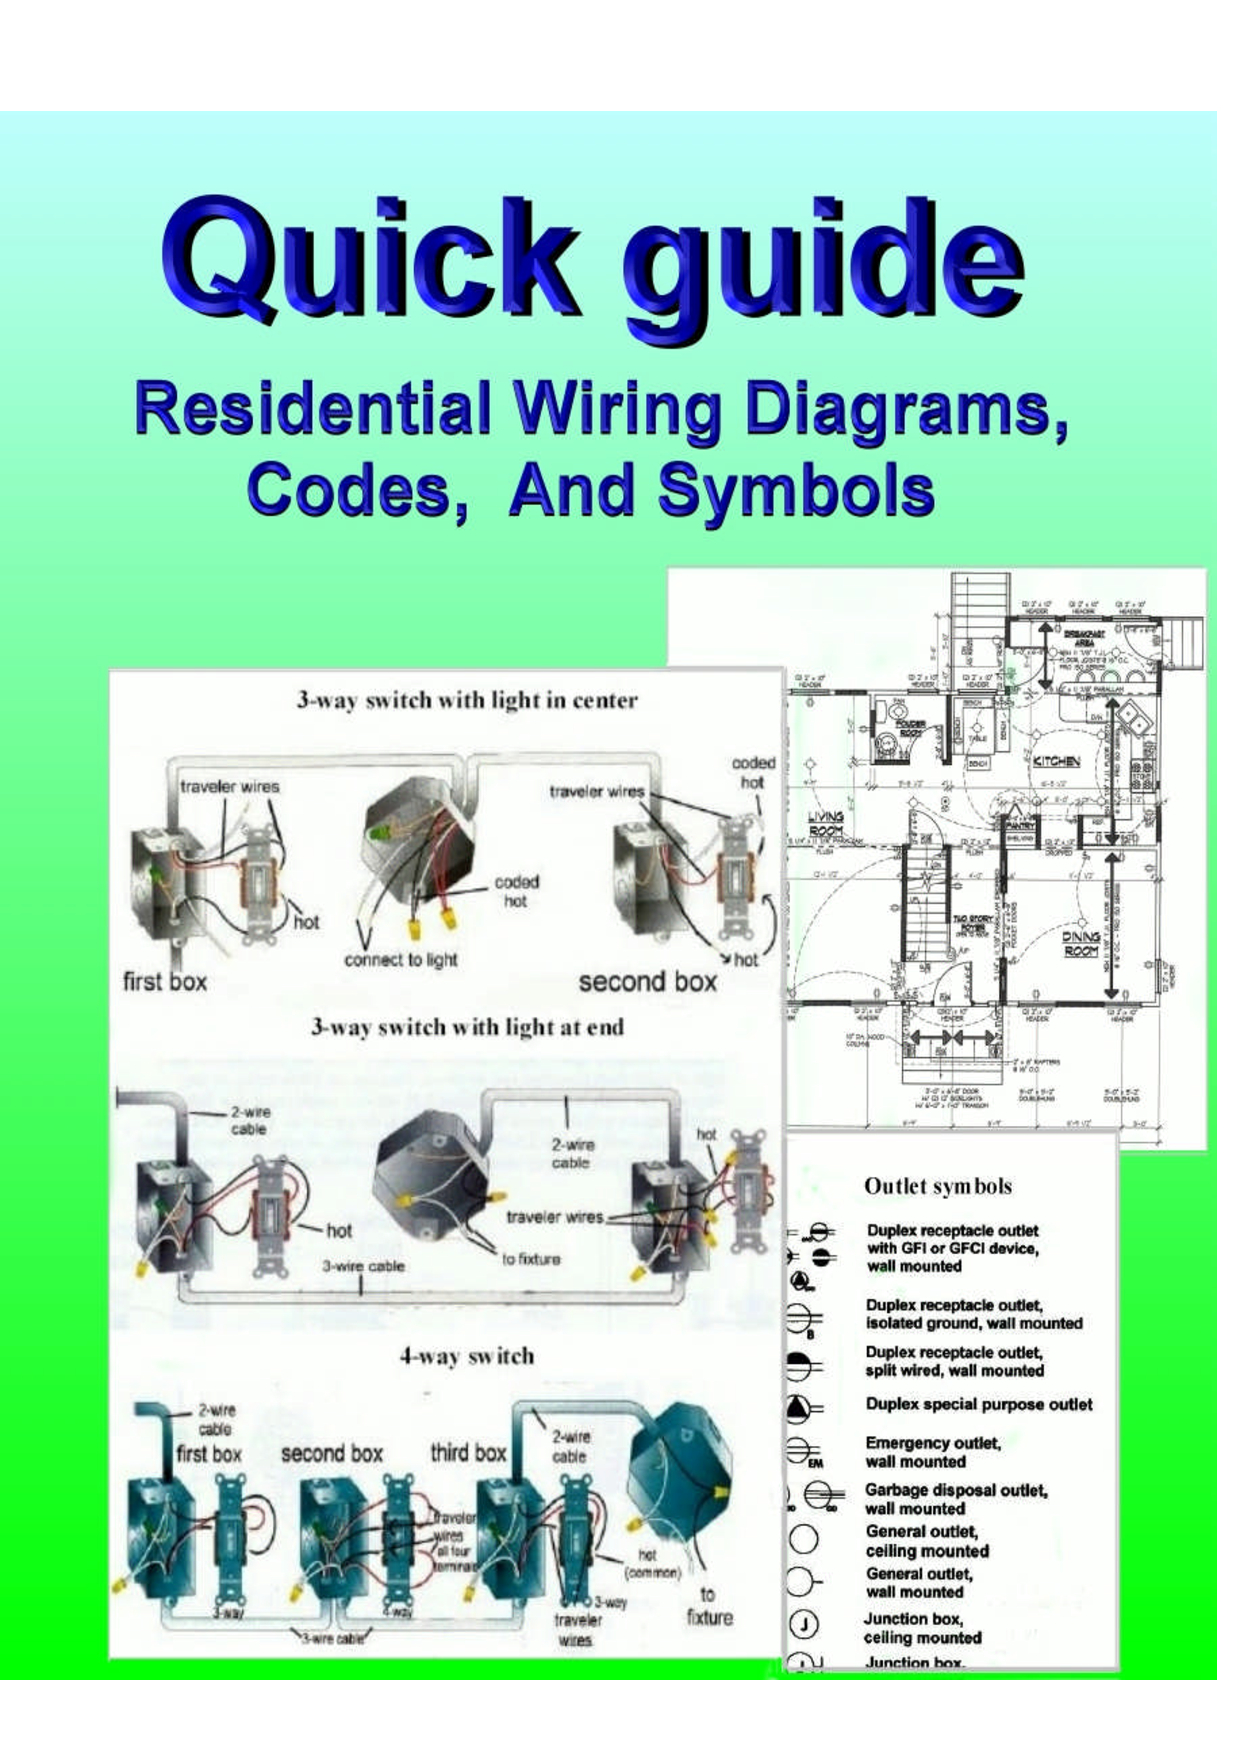 Home Electrical Wiring Diagrams.pdf Download Legal Documents 39 - 4 Way Switch Wiring Diagram Pdf